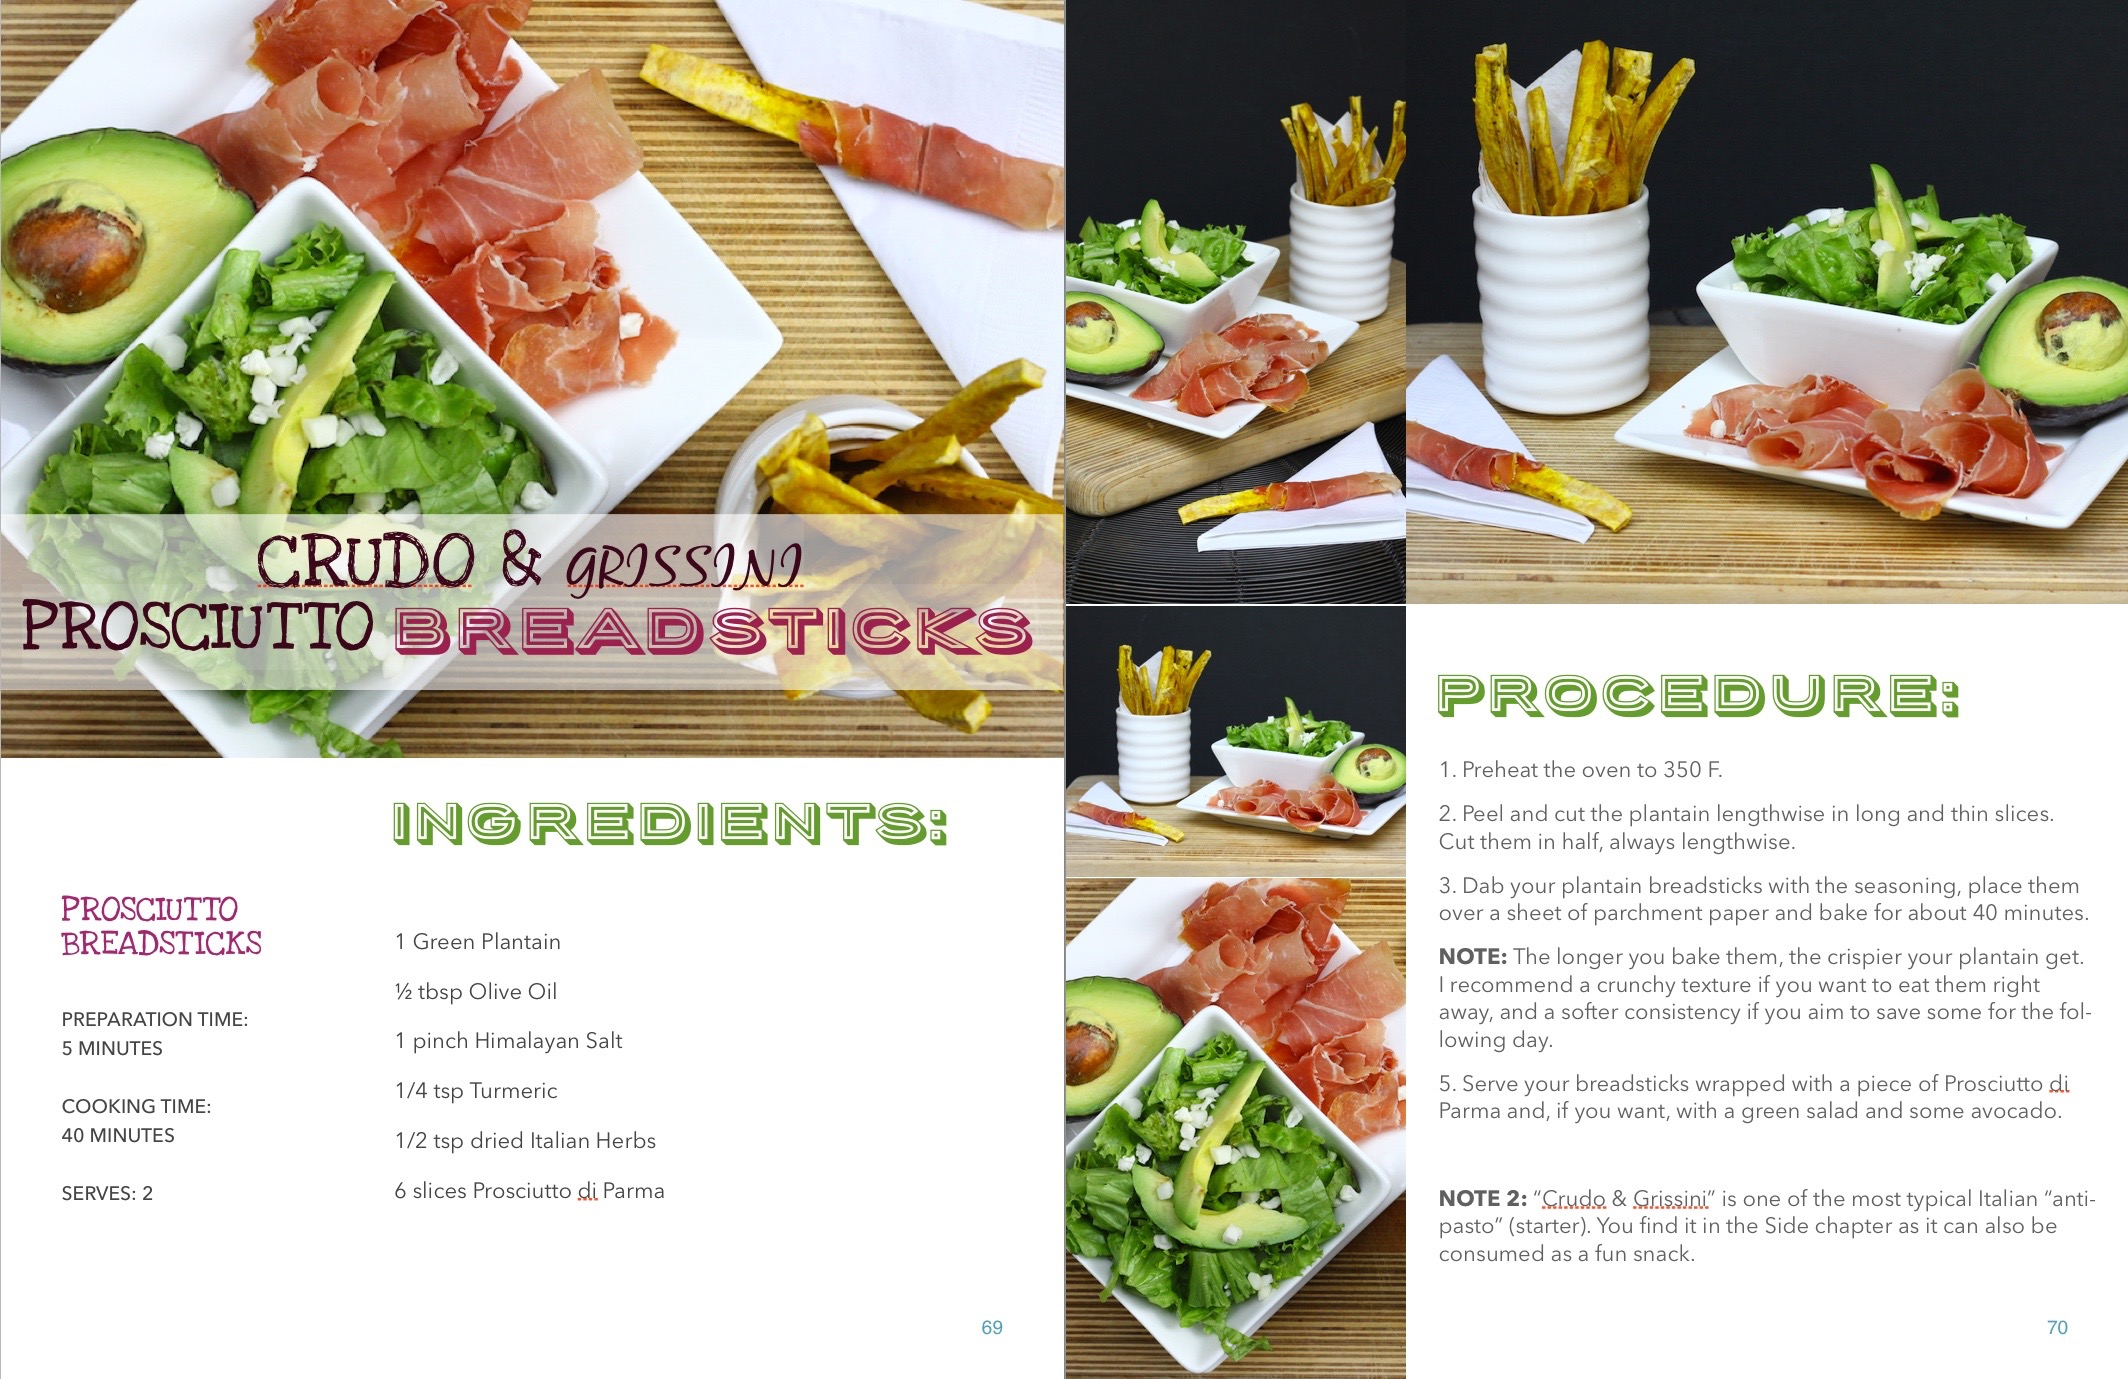 AIP Breadsticks with Prosciutto